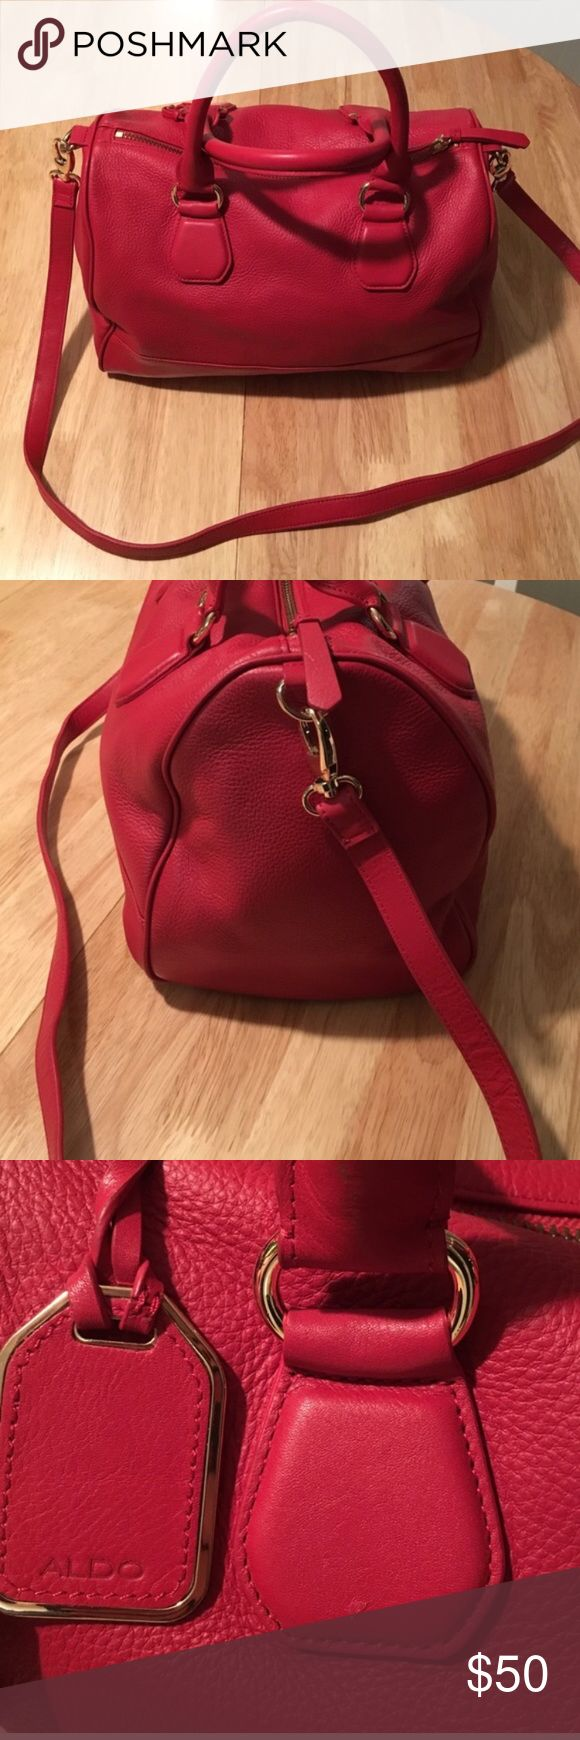 ALDO large red leather bag - crossbody or handles so versatile and fits so much! no trades. bundle for discount. formal offers only. Aldo Bags Crossbody Bags